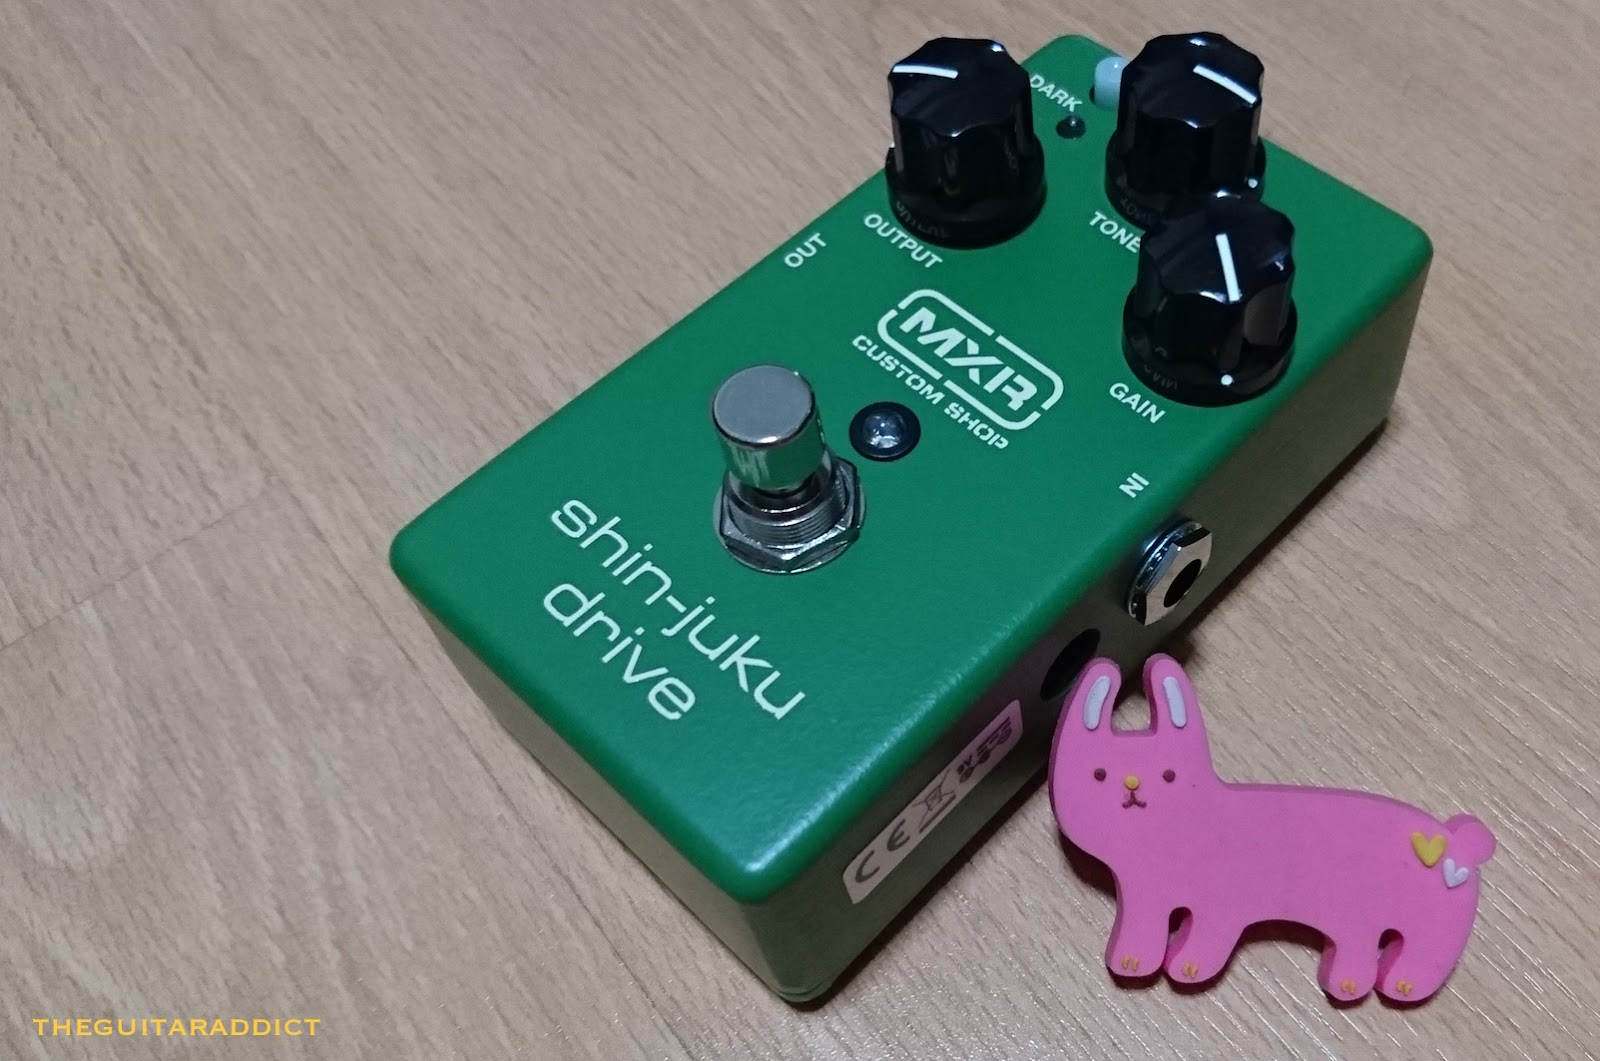 Replacement Power Supply for MXR DUNLOP GT-OD OVERDRIVE M193 9V HS